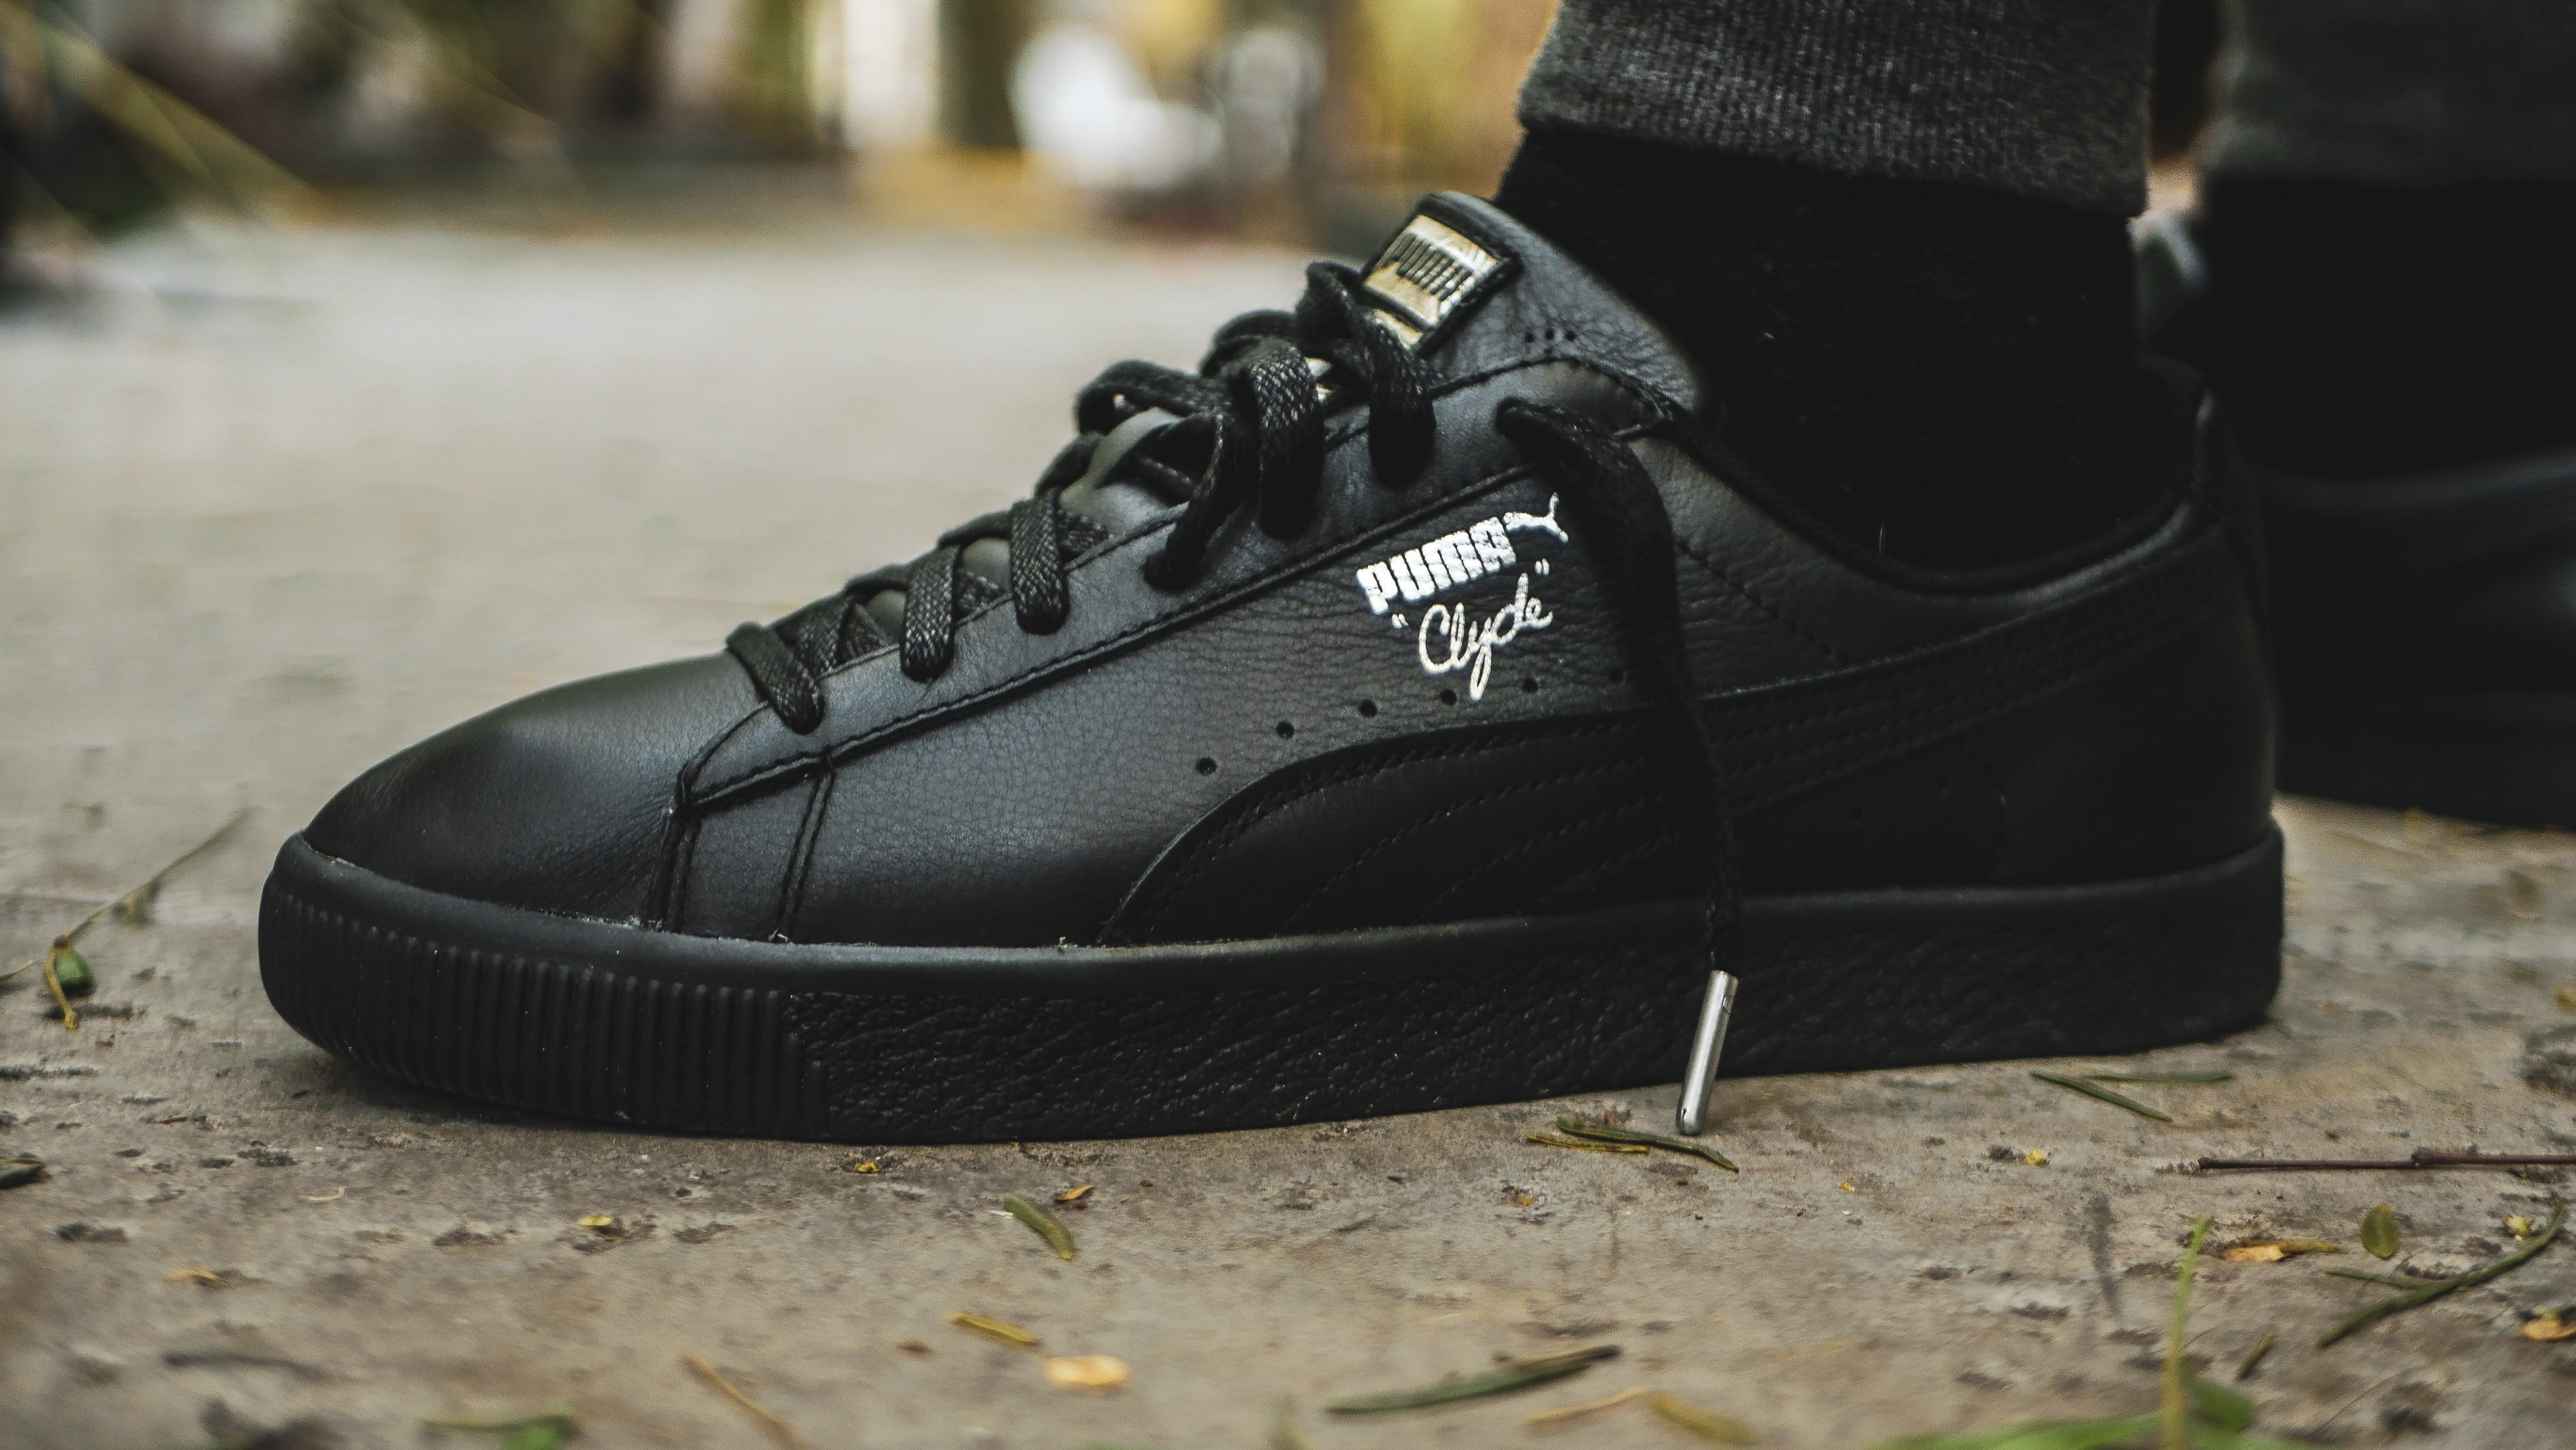 Person Wearing Black Puma Low-top Sneakers